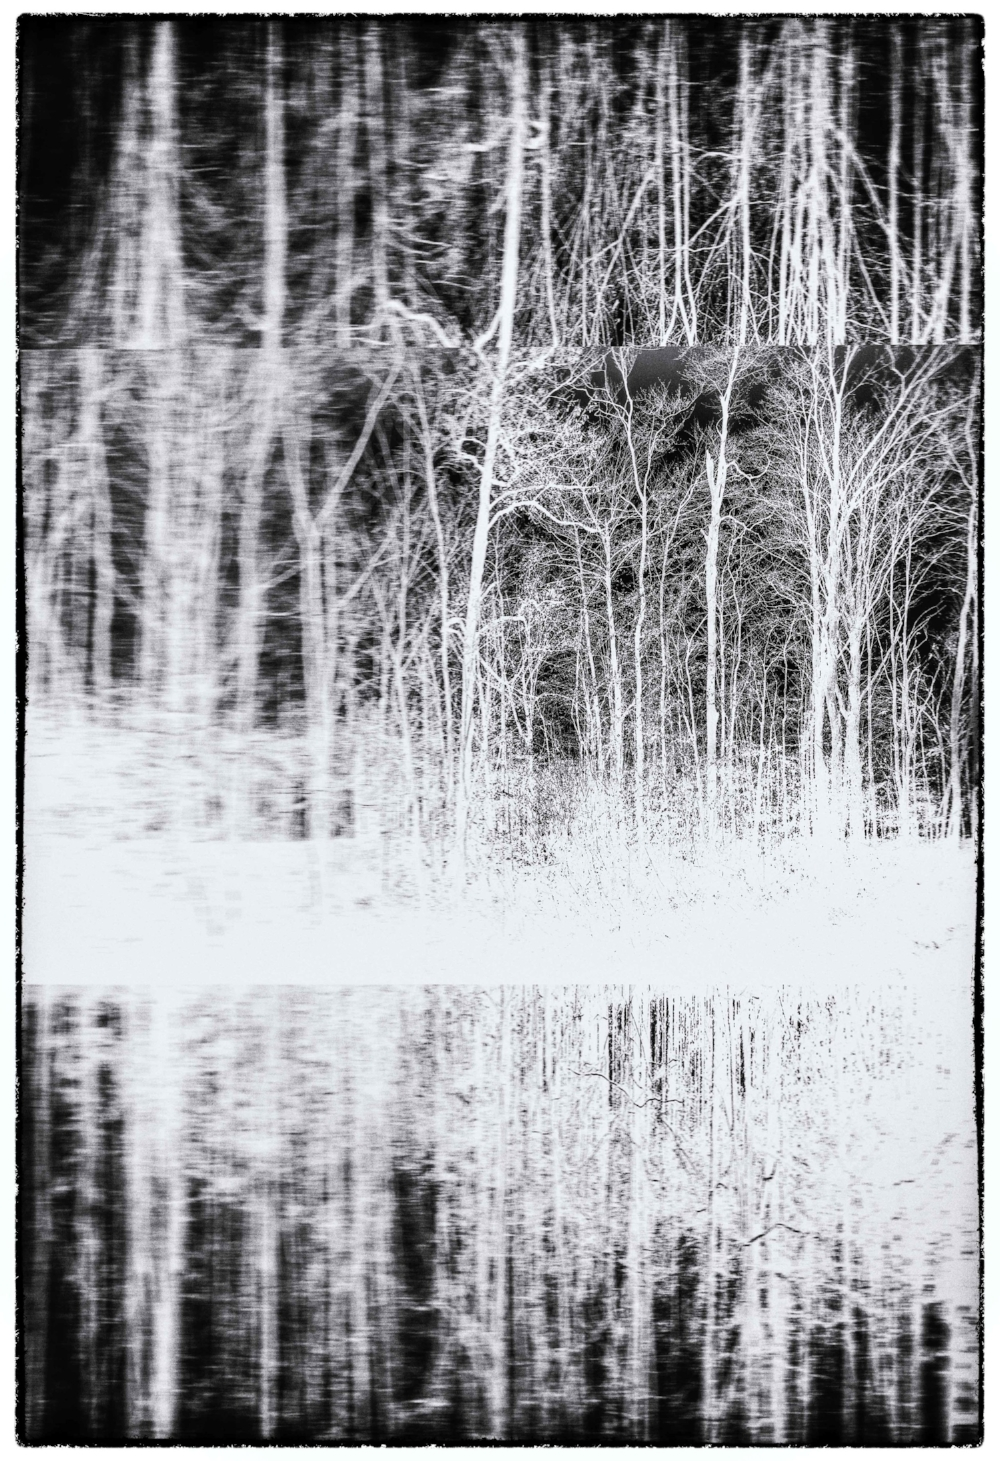 'Interconnected' - Fine art photography 17x23